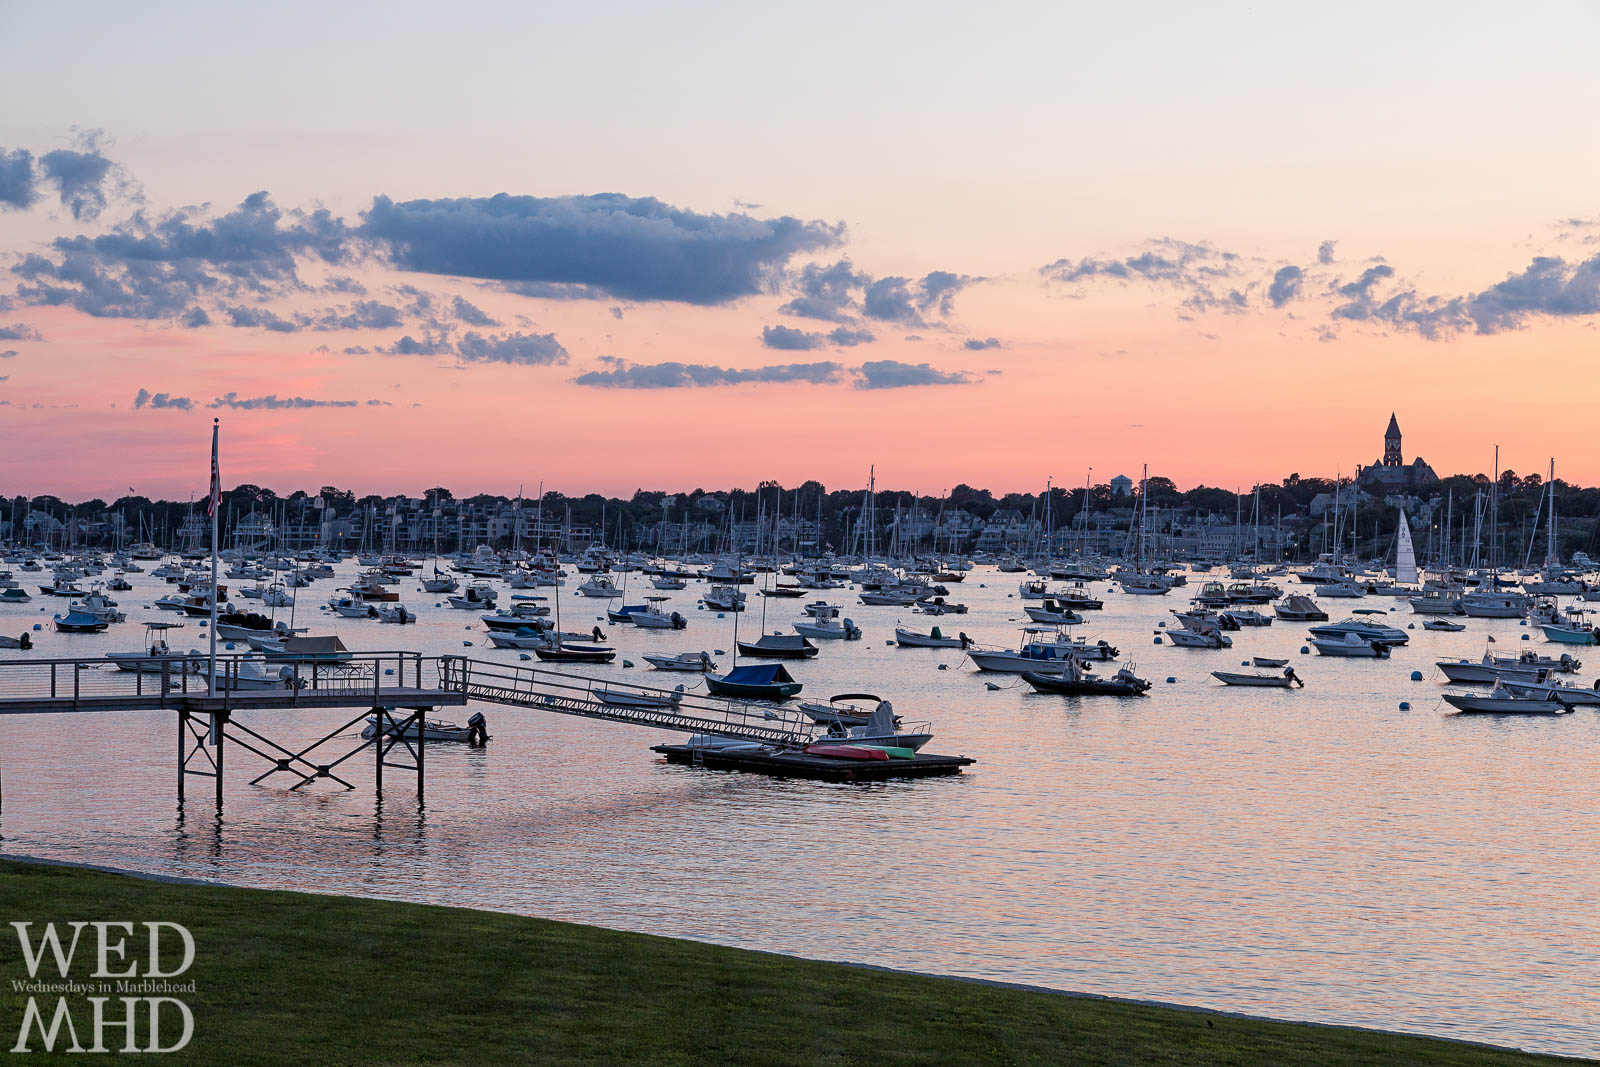 The perfect spot for a sunset can be found on Corinthian Lane in Marblehead